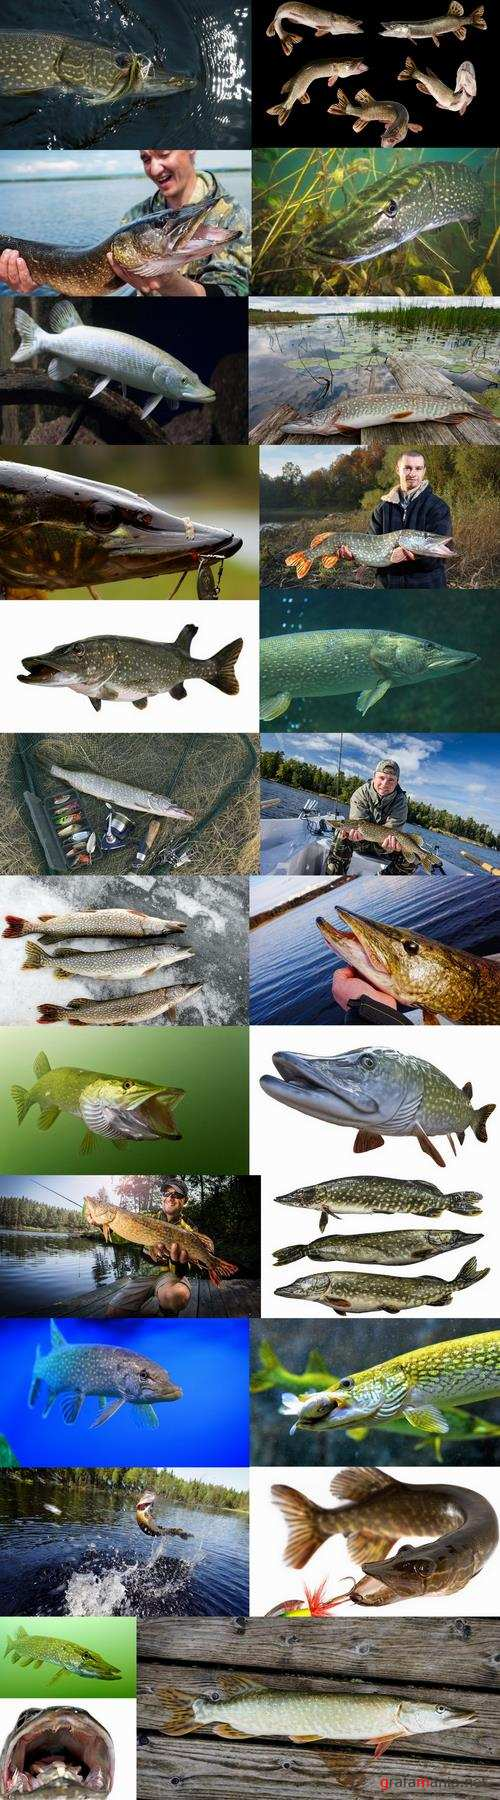 Trophy pike fishing mining 25 HQ Jpeg